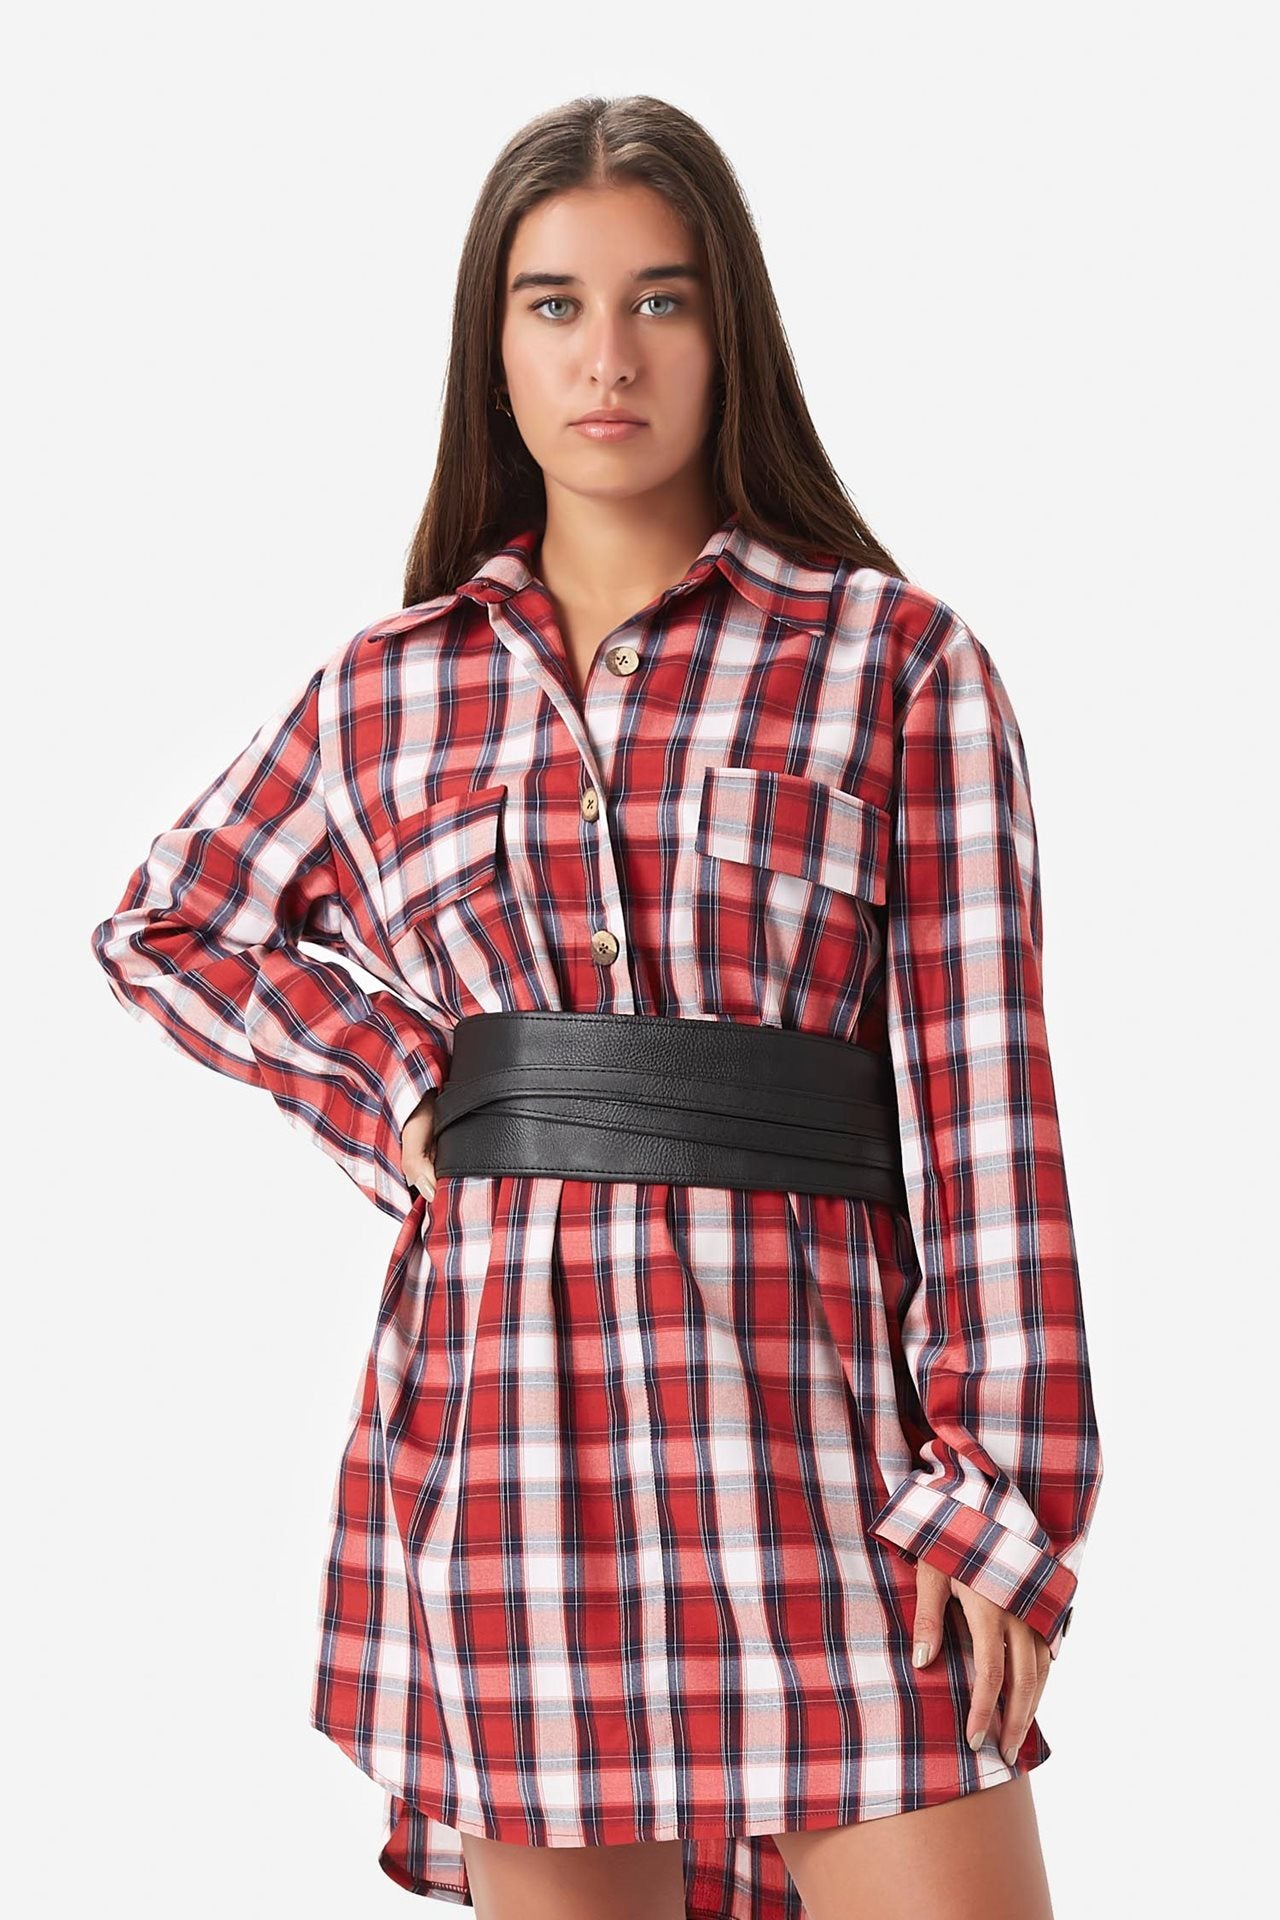 Dress-Shirt with Belt